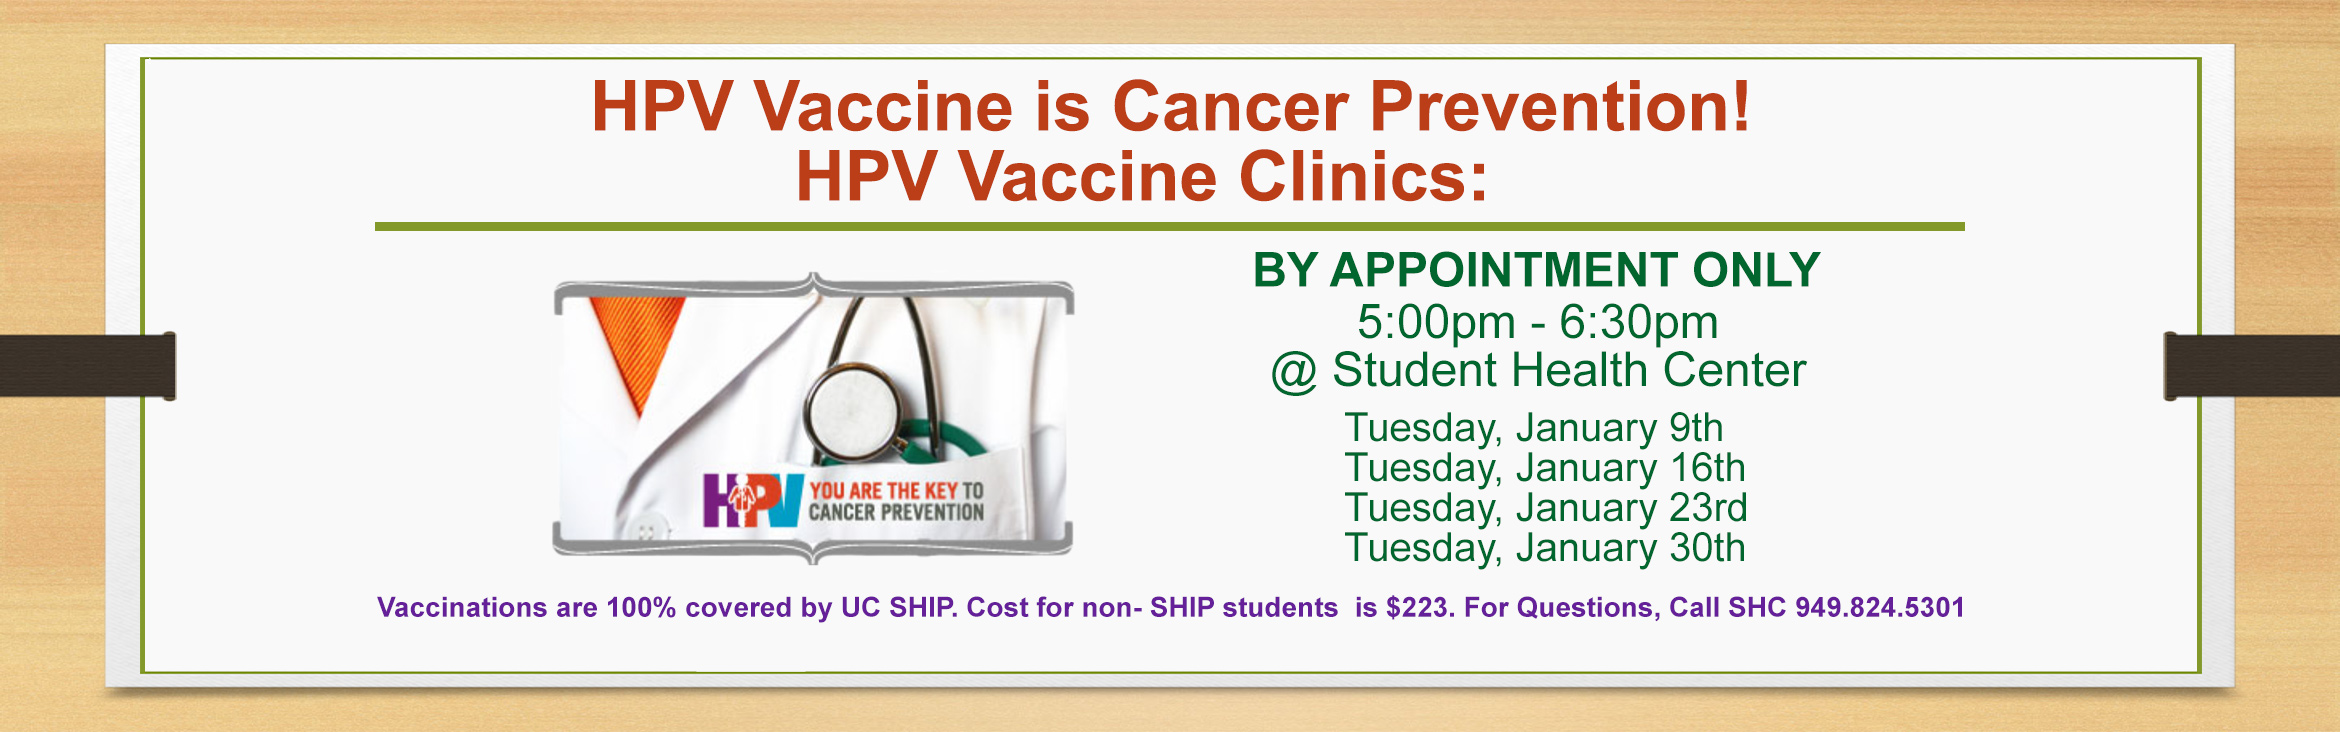 HPV Vaccine is Cancer Prevention! HPV Vaccine Clinics BY APPOINTMENT ONLY from 5:00pm - 6:30pm @ Student Health Center: Tuesday, January 9th, Tuesday, January 16th, Tuesday, January 23rd, and Tuesday, January 30th